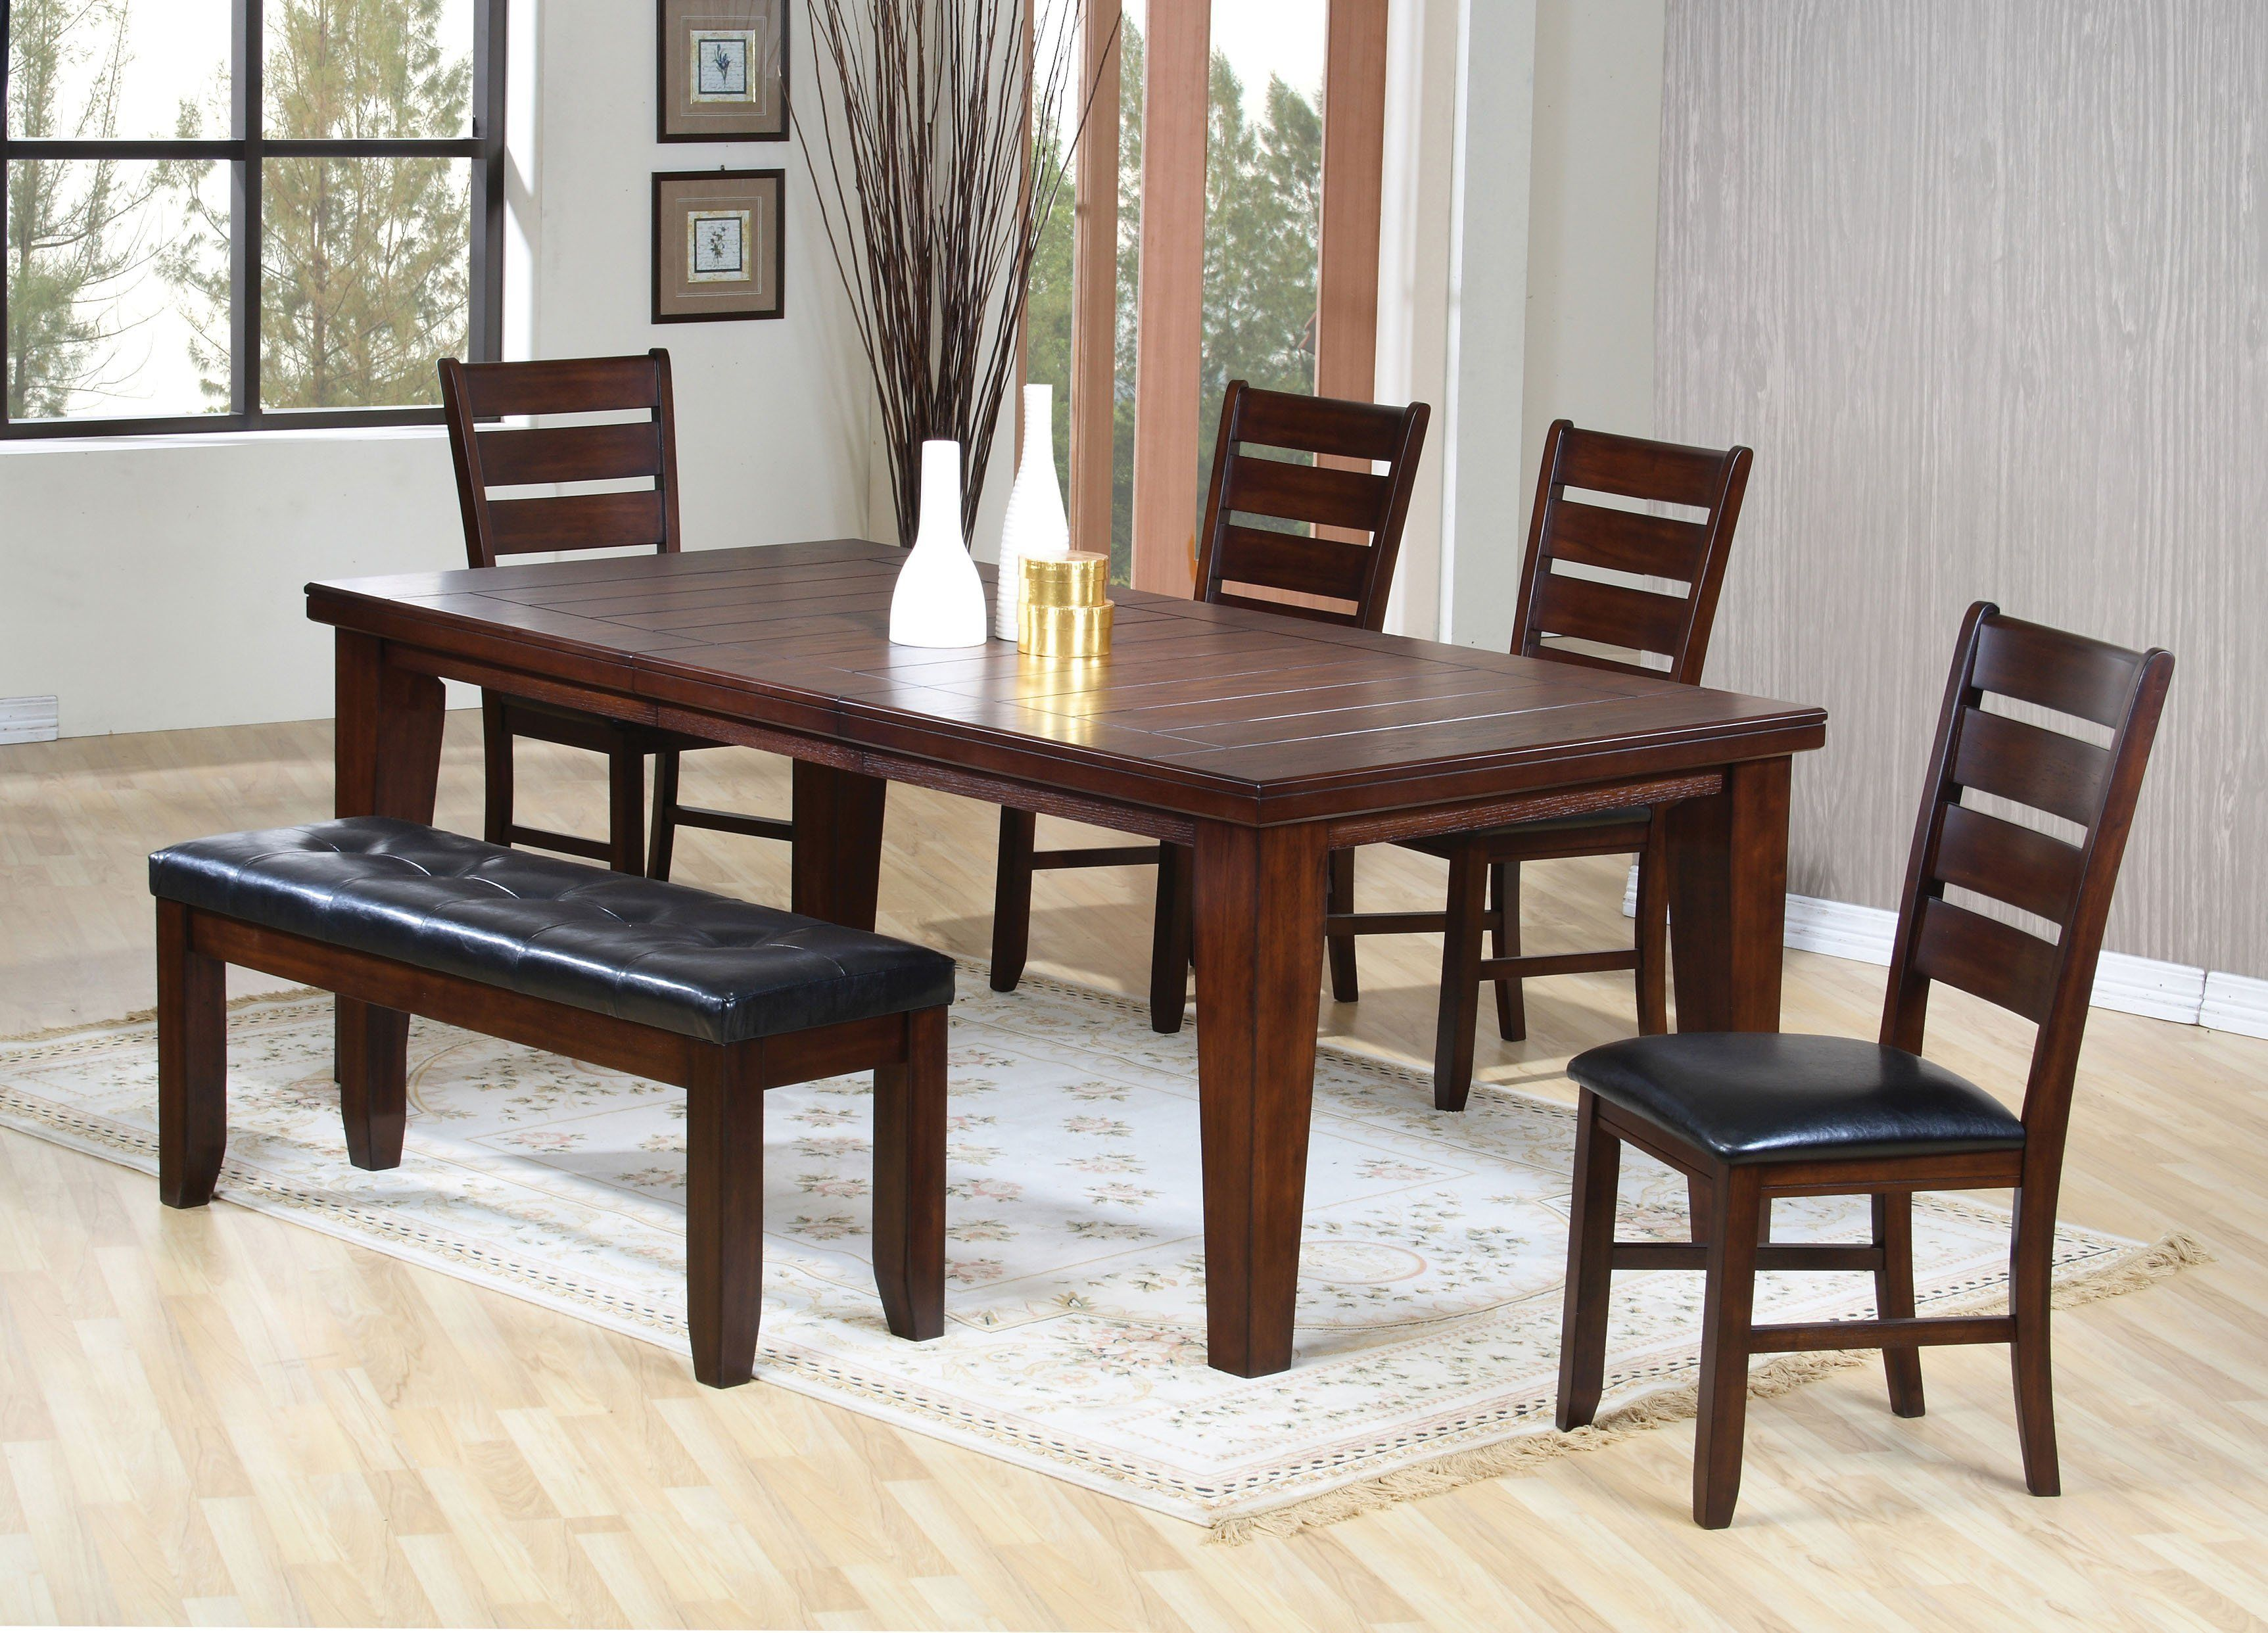 Urbana Dining Table Cherry Dining Table Chairs Dining Room